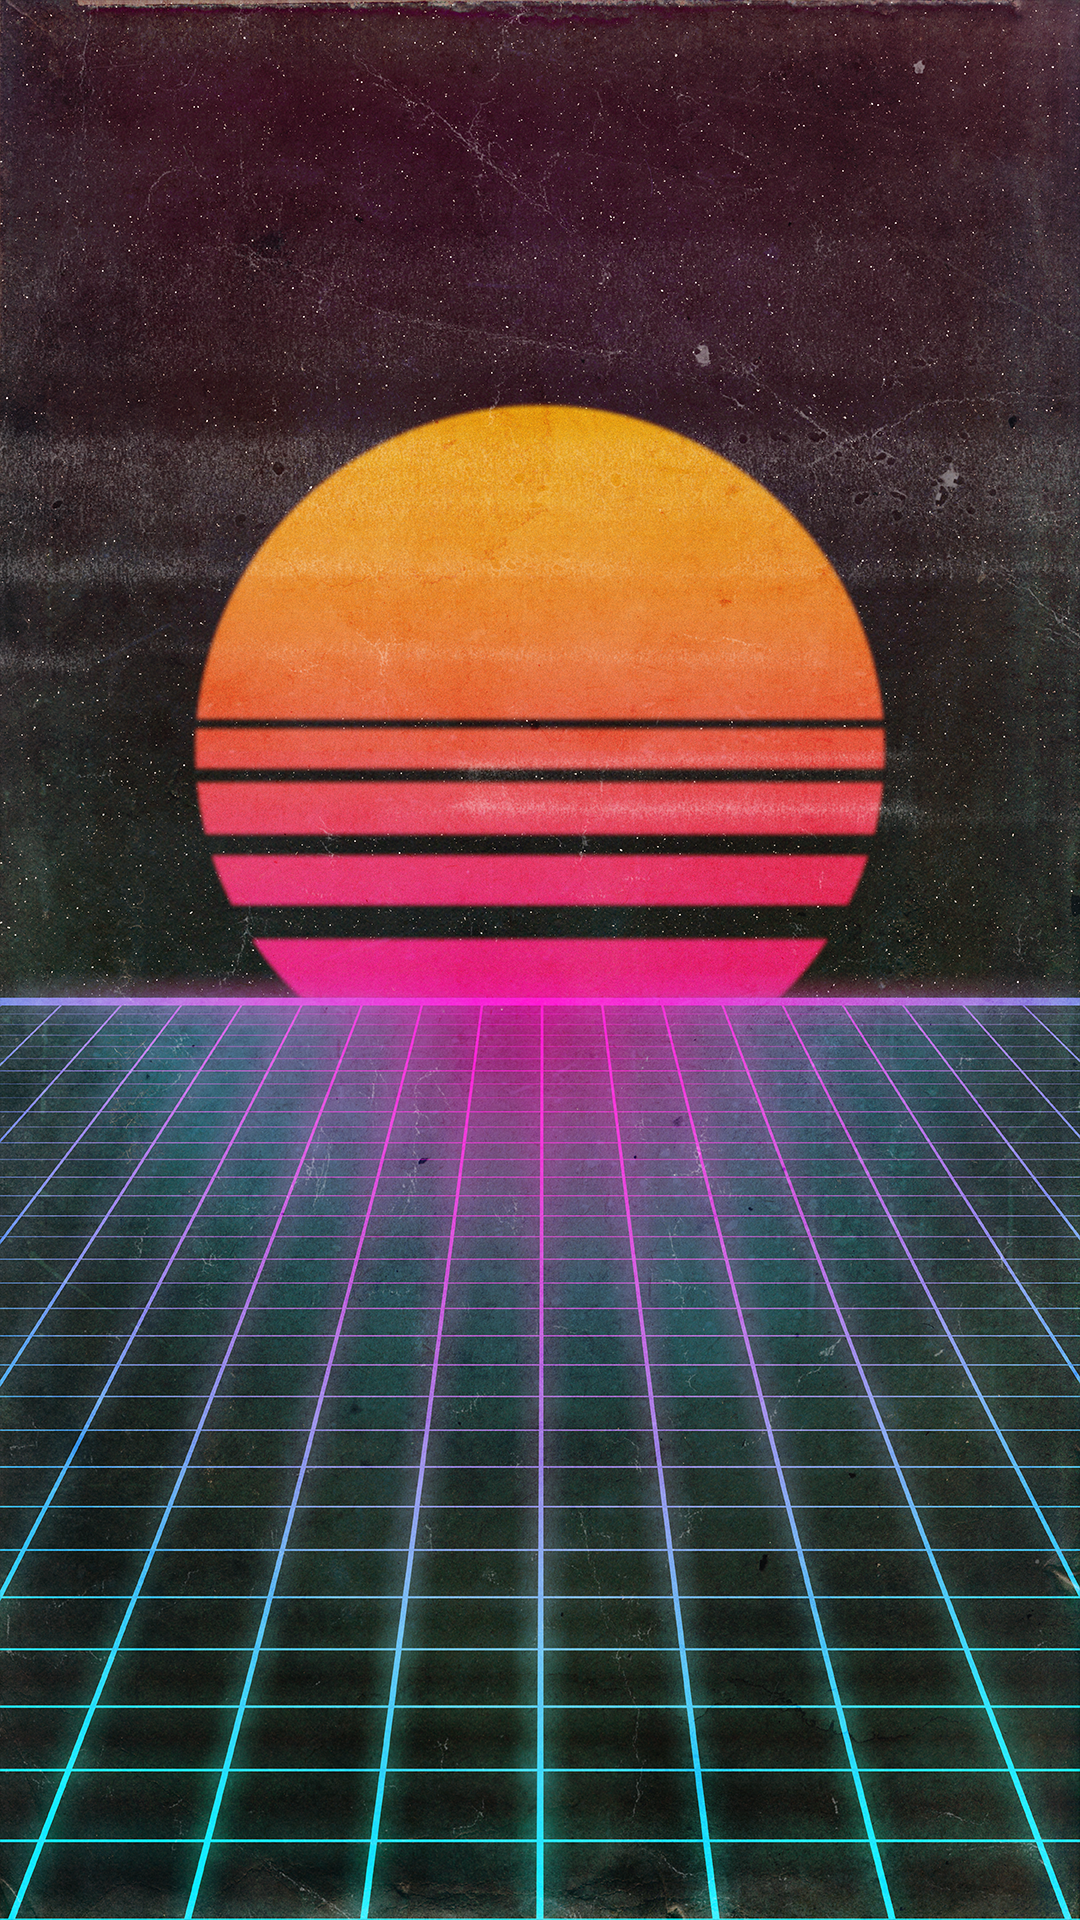 Outrun Wallpaper No Text With Images Vaporwave Wallpaper Vaporwave Cyberpunk Aesthetic